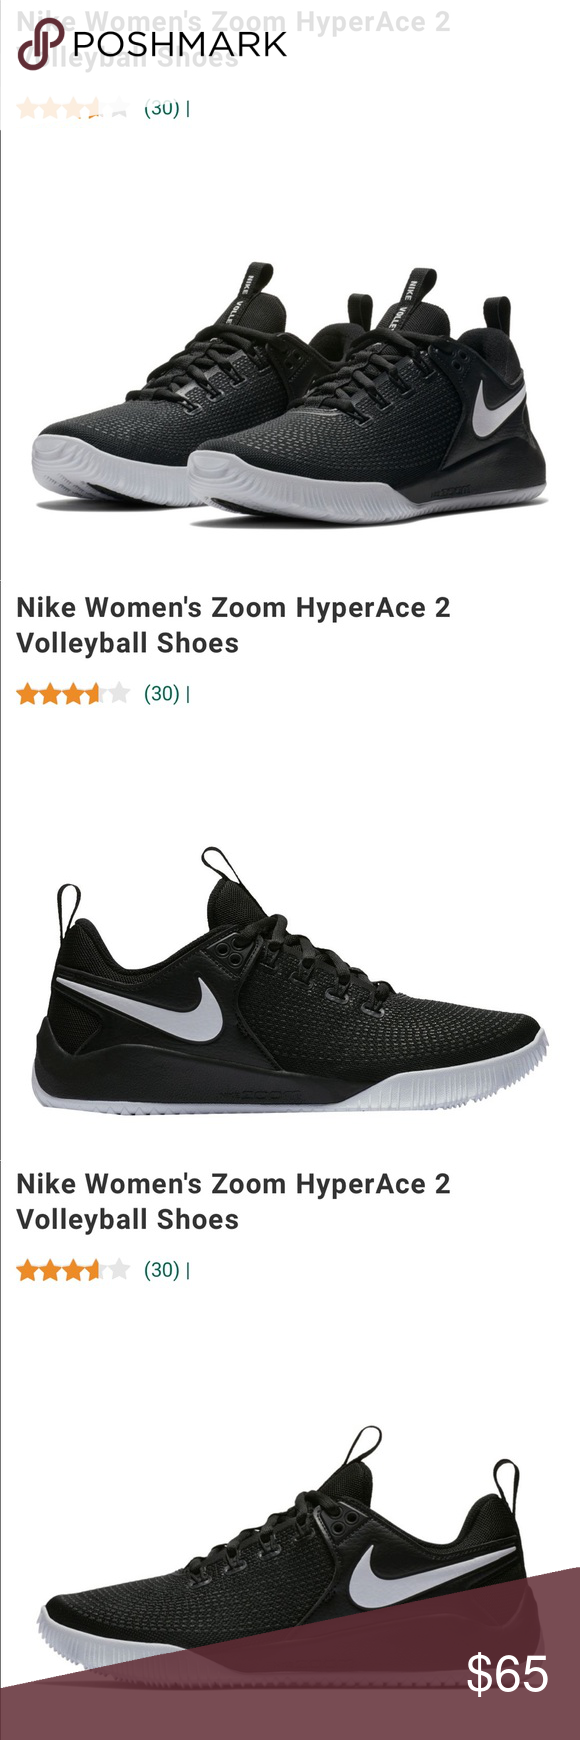 Nike Women S Zoom Hyperace 2 Volleyball Shoes Volleyball Shoes Nike Volleyball Shoes Nike Women